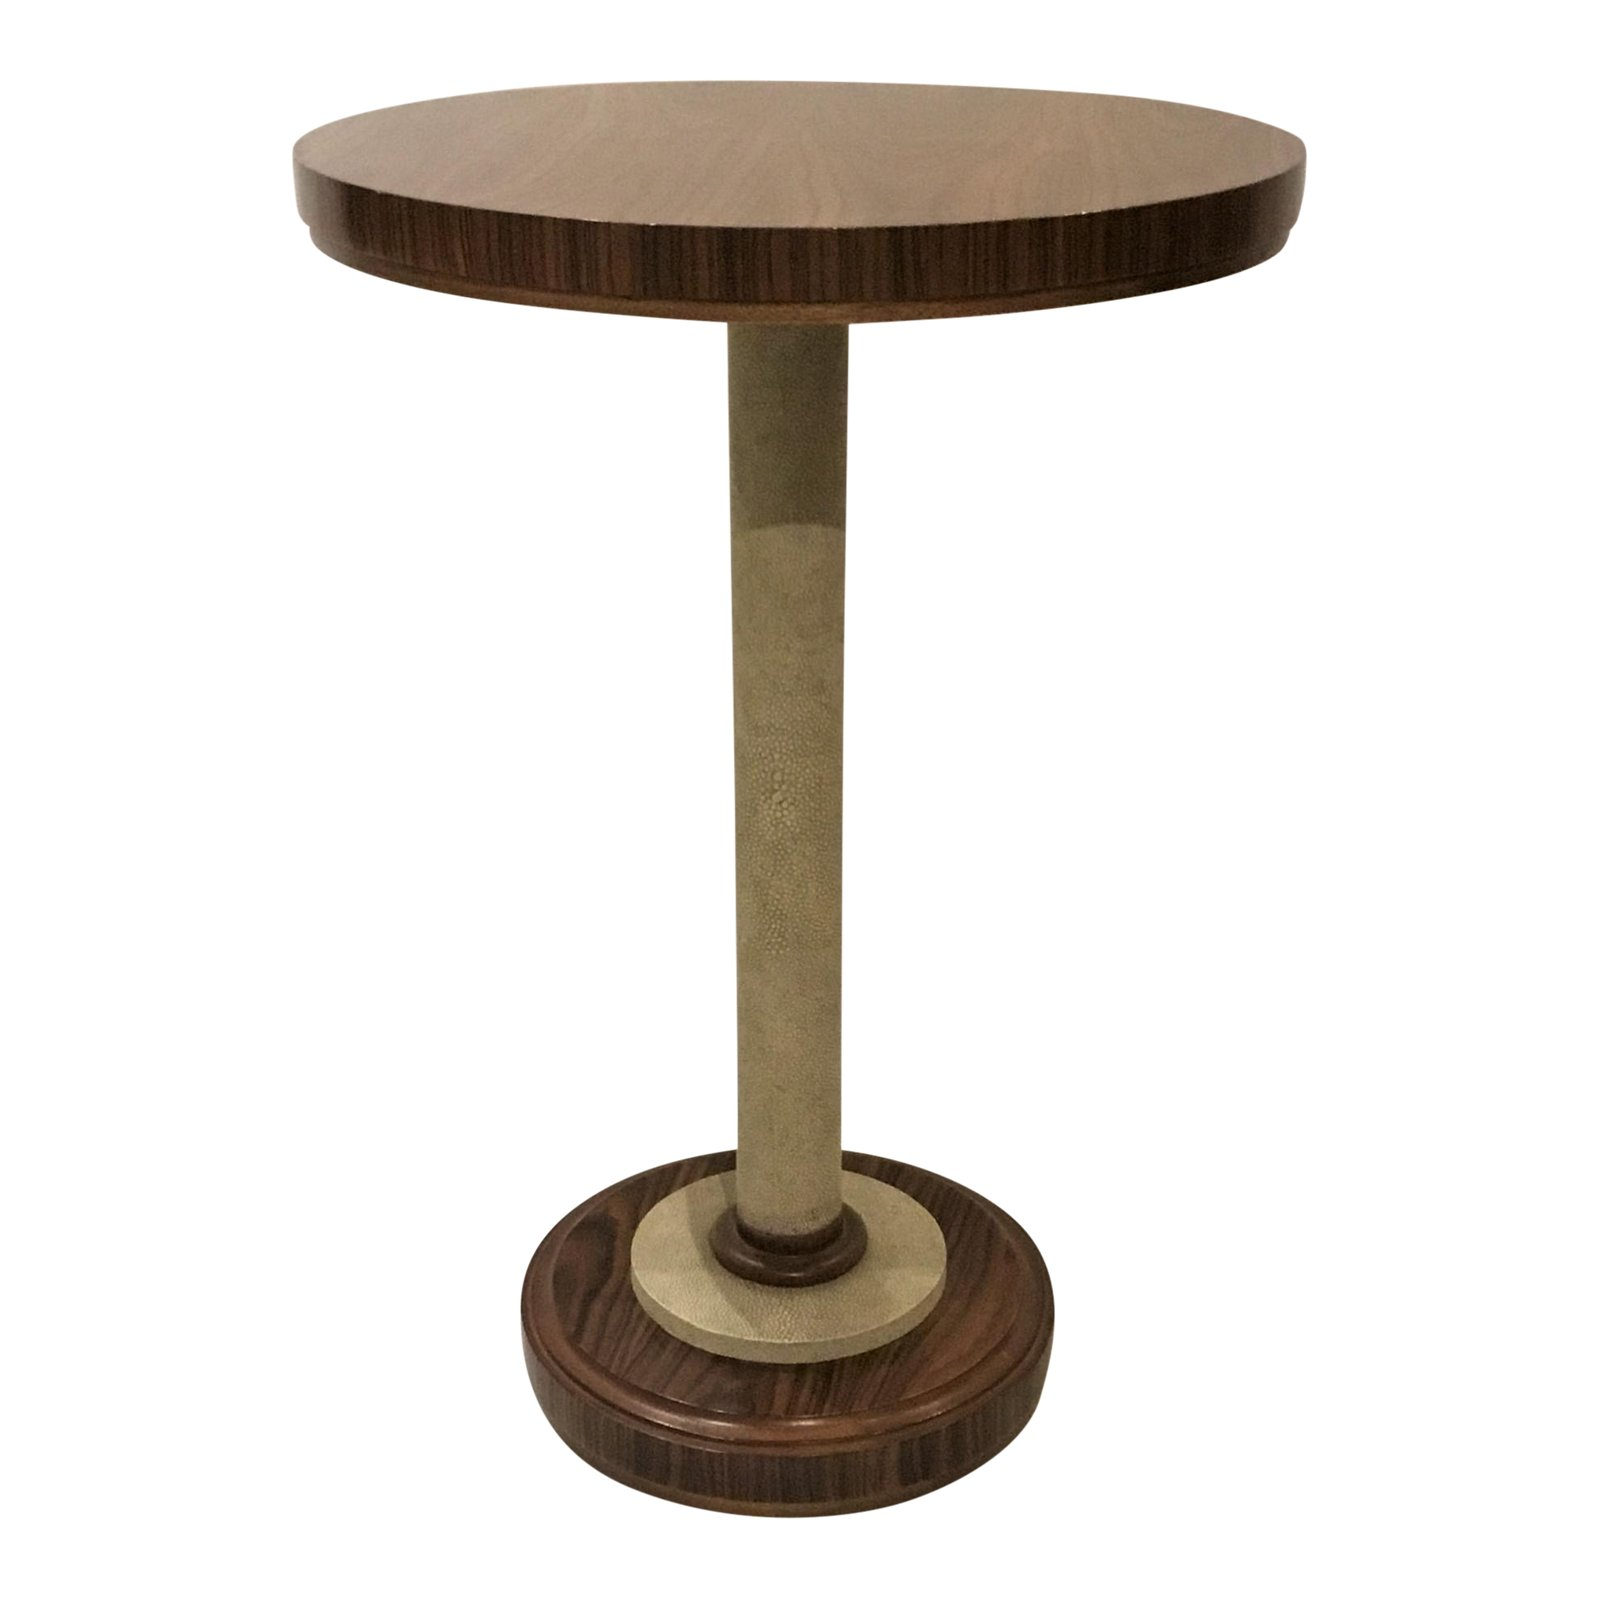 hickory chair shagreen wood accent table chairish and sofa unusual tables pier imports patio furniture inch round covers pearl drum throne corner end console chest drawers